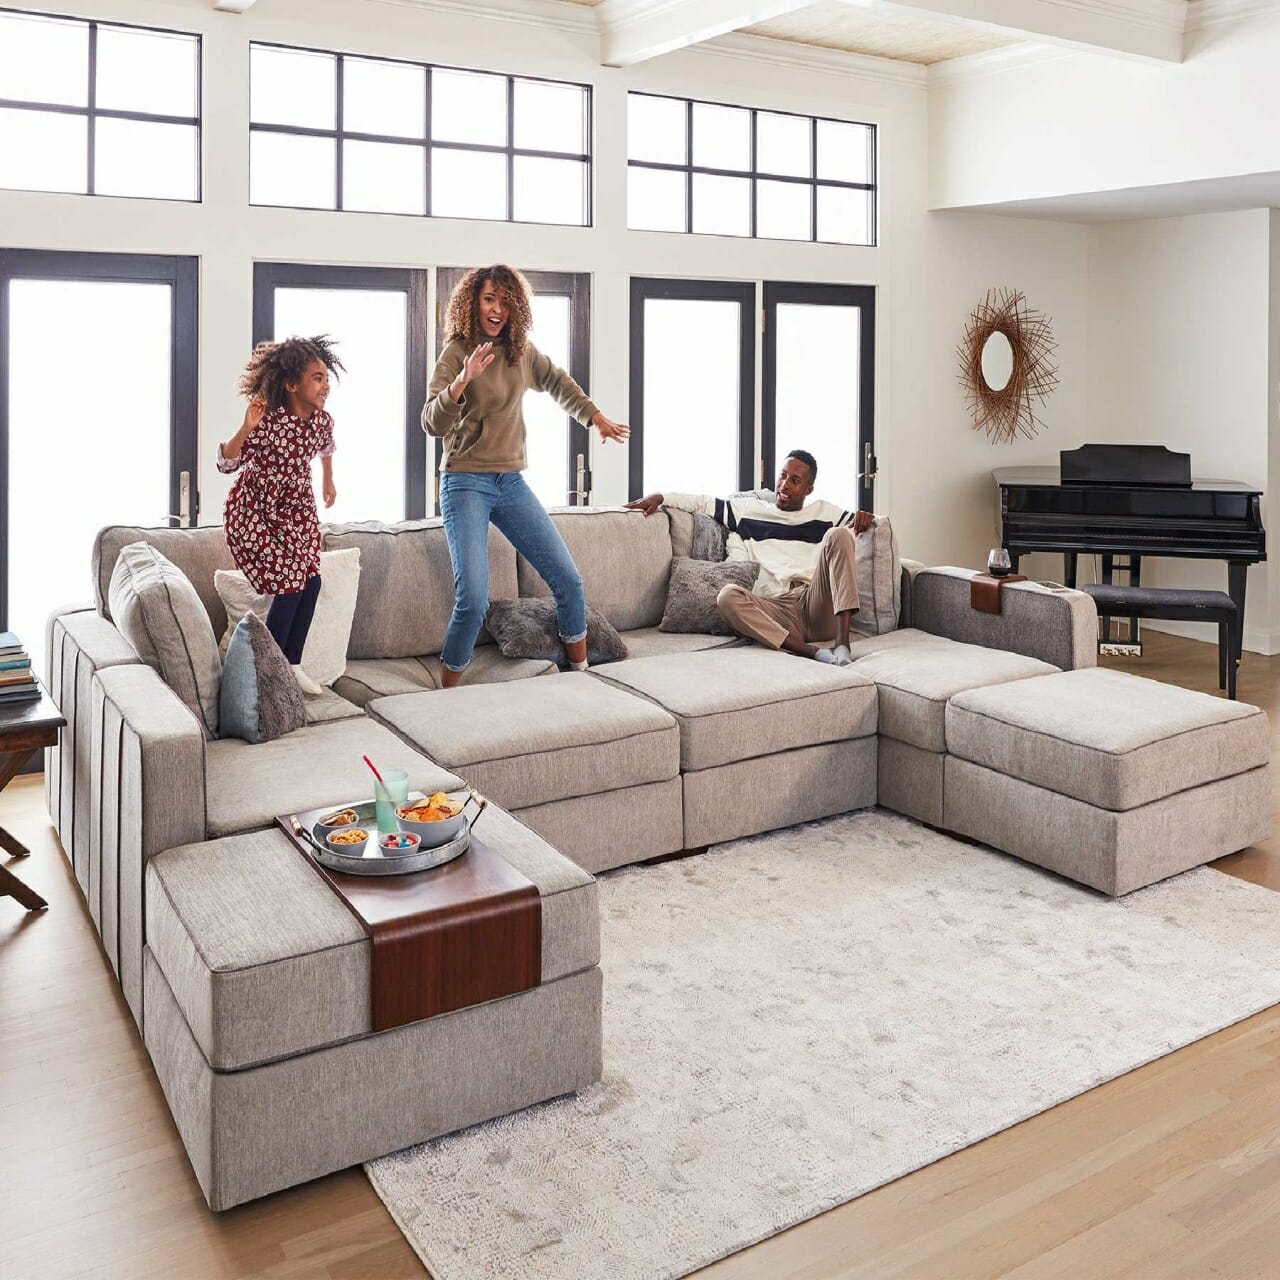 Two kids jumping up and down on a Lovesac Sectional couch.